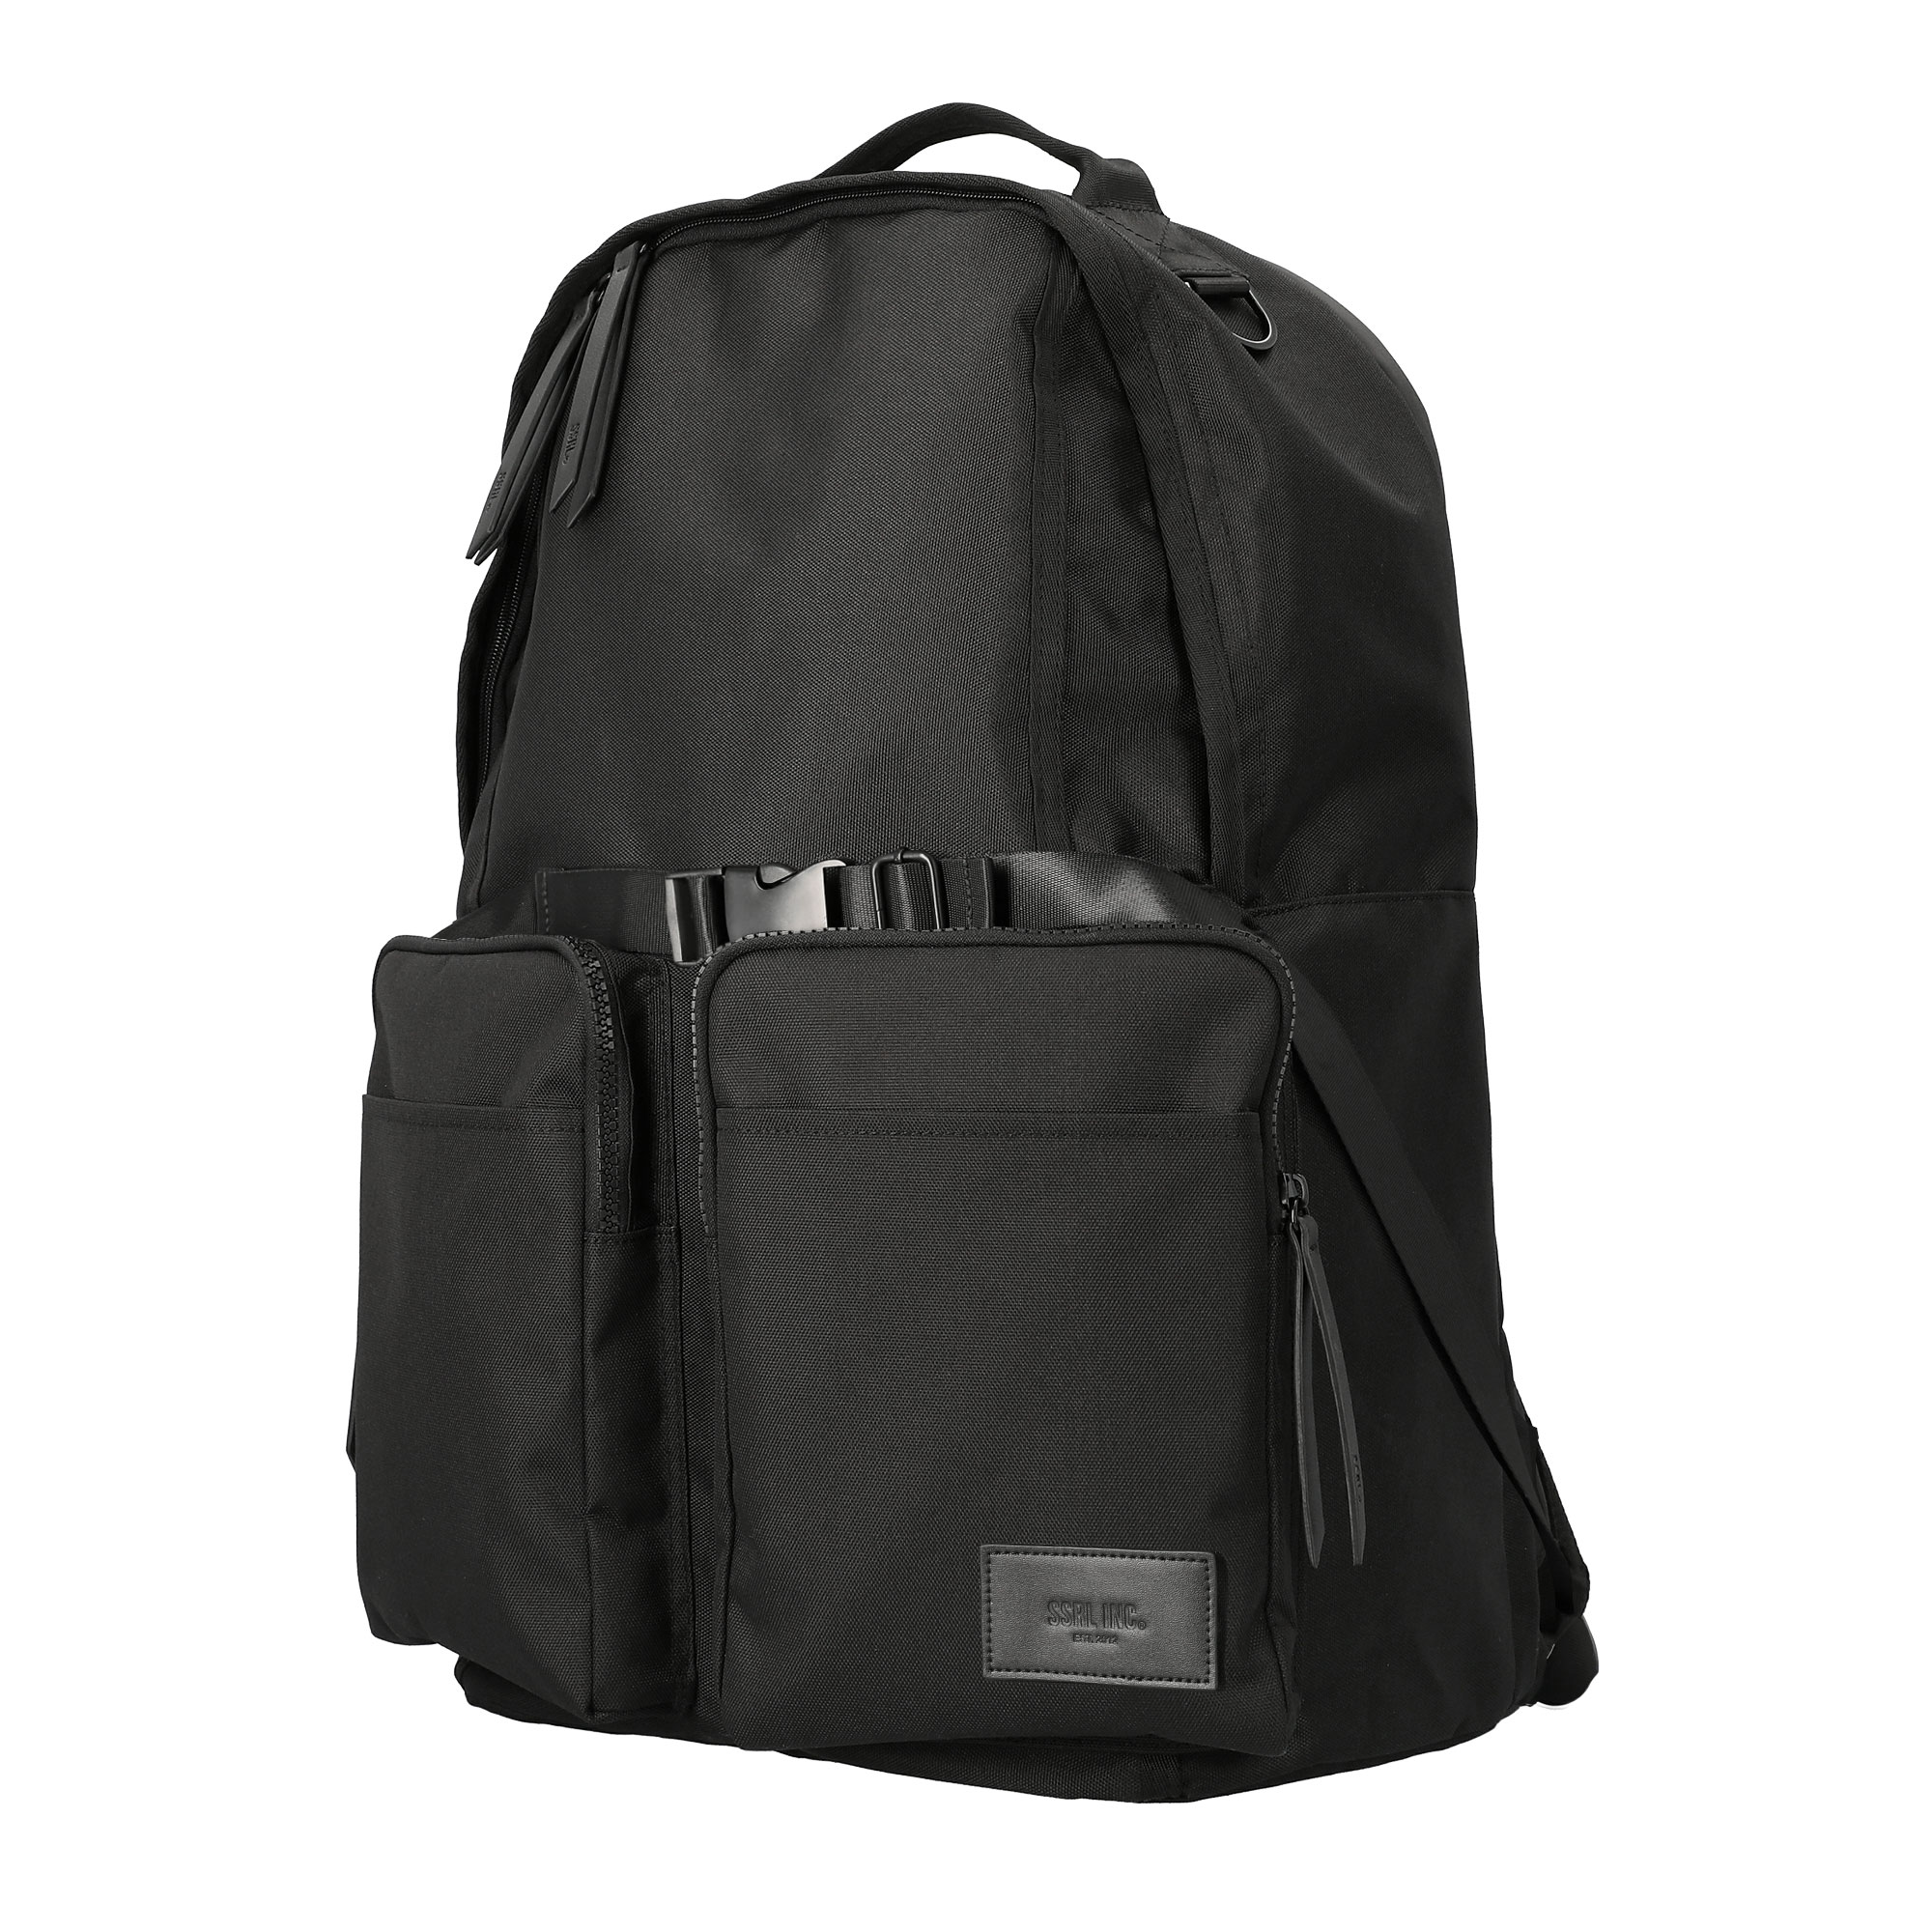 dual pocket backpack / black